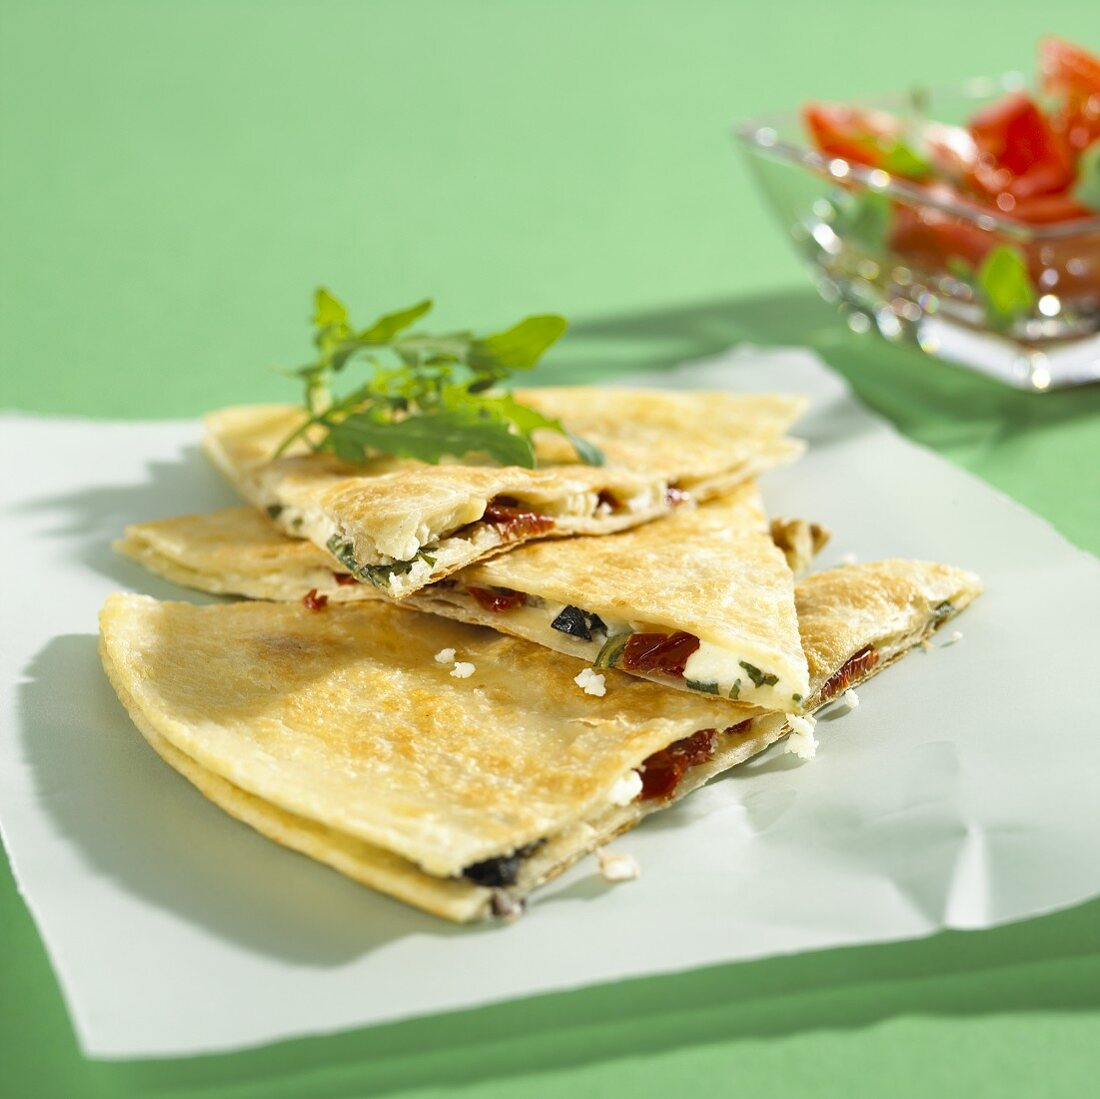 Quesadilla filled with olives, dried tomatoes, feta